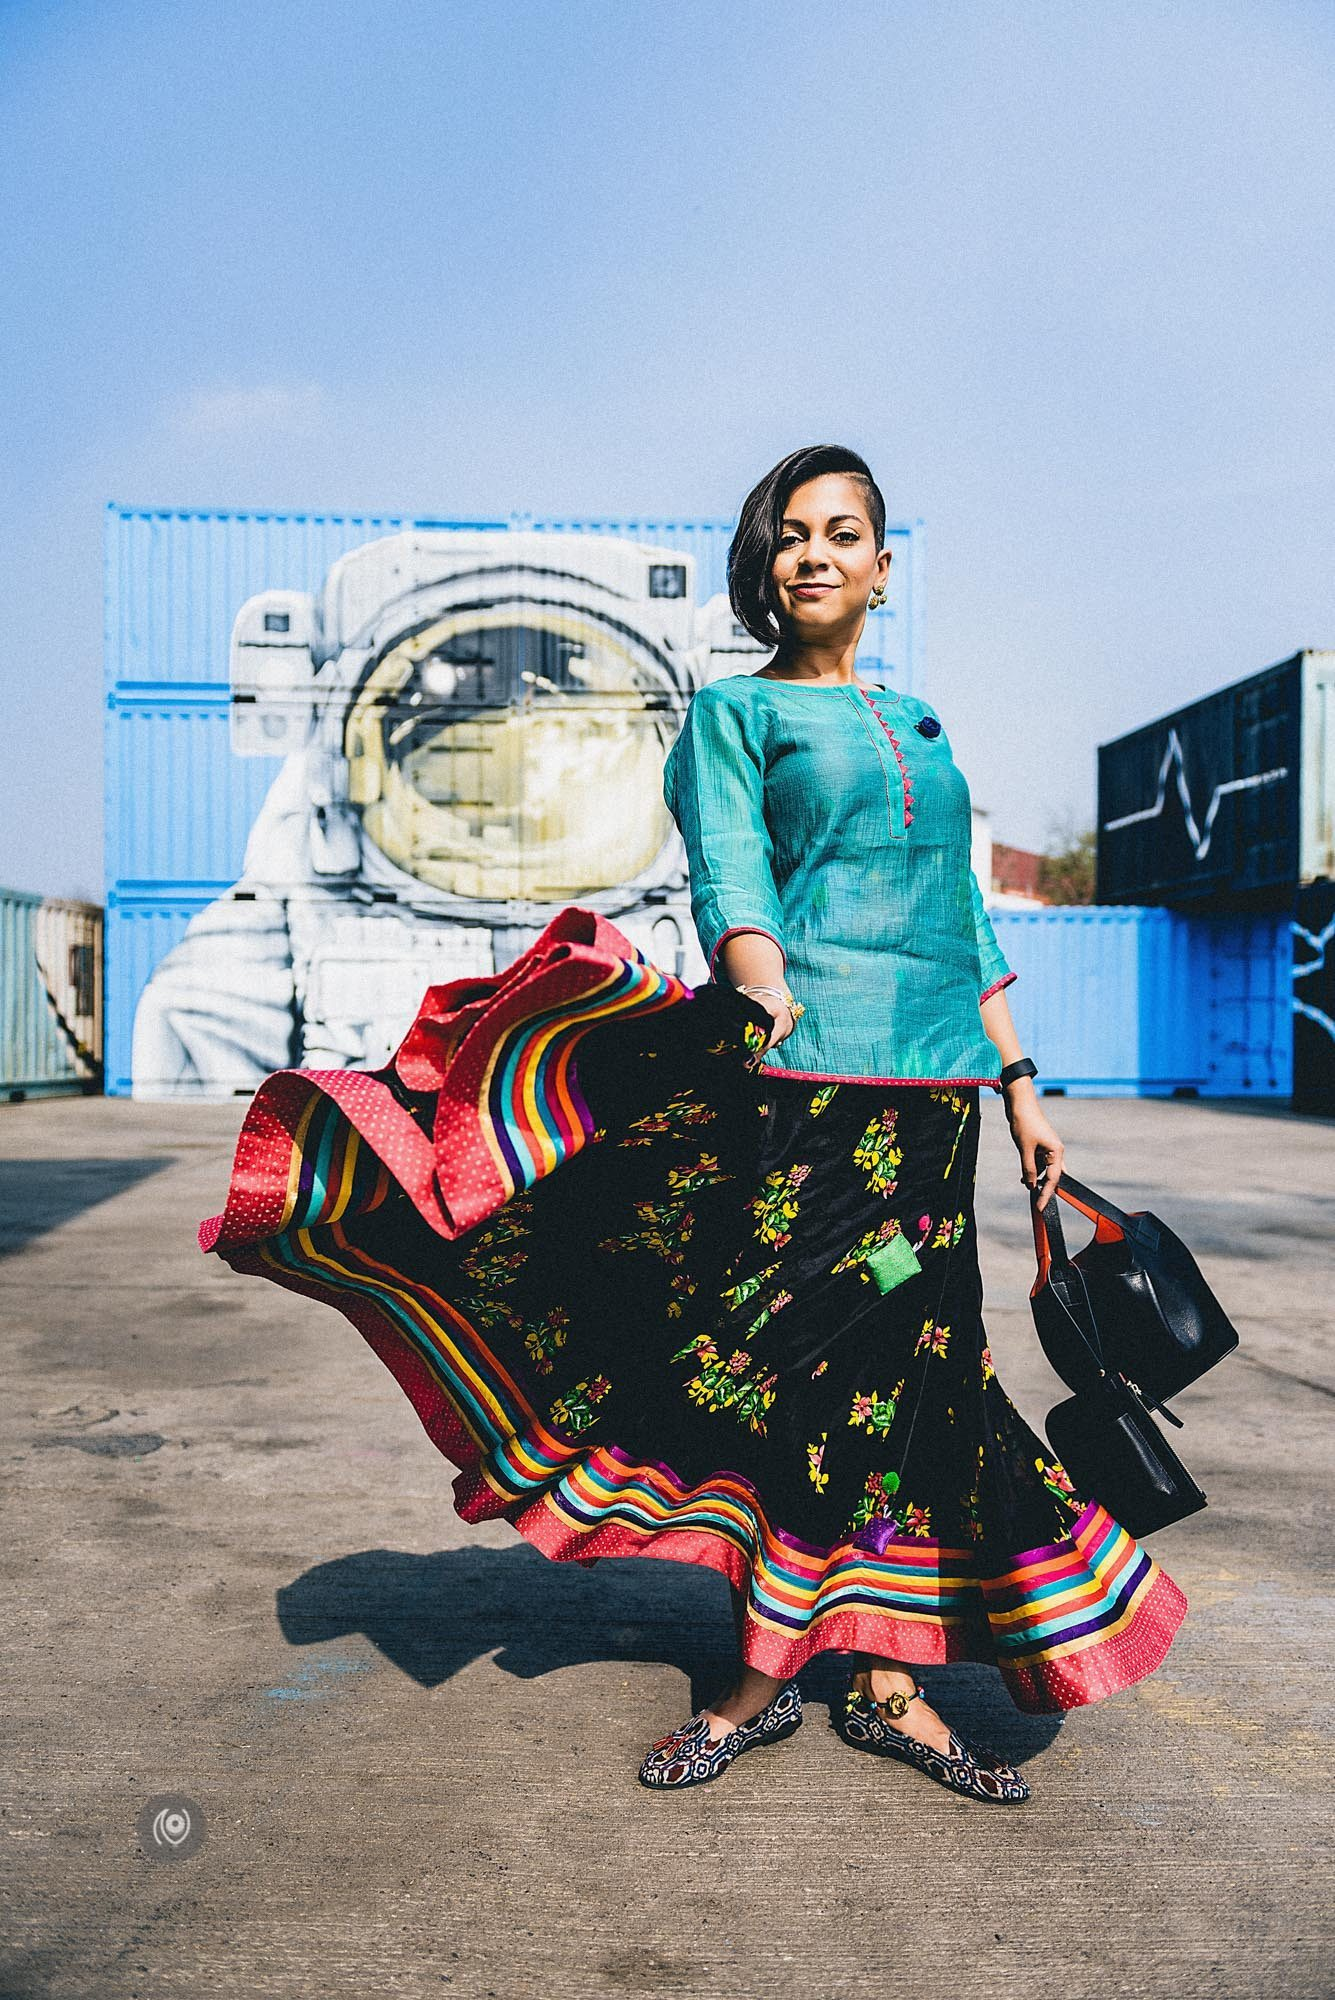 #CoverUp 64 #MadeInIndia vraj:bhoomi, Diaries of Nomad, Flying Fish Accessories, Poem Bags, Naina.co, Naina Redhu, Luxury Photographer, Lifestyle Photographer, Luxury Blogger, Lifestyle Blogger, Experience Collector, Personal Style, #MadeInIndia, #CoverUp